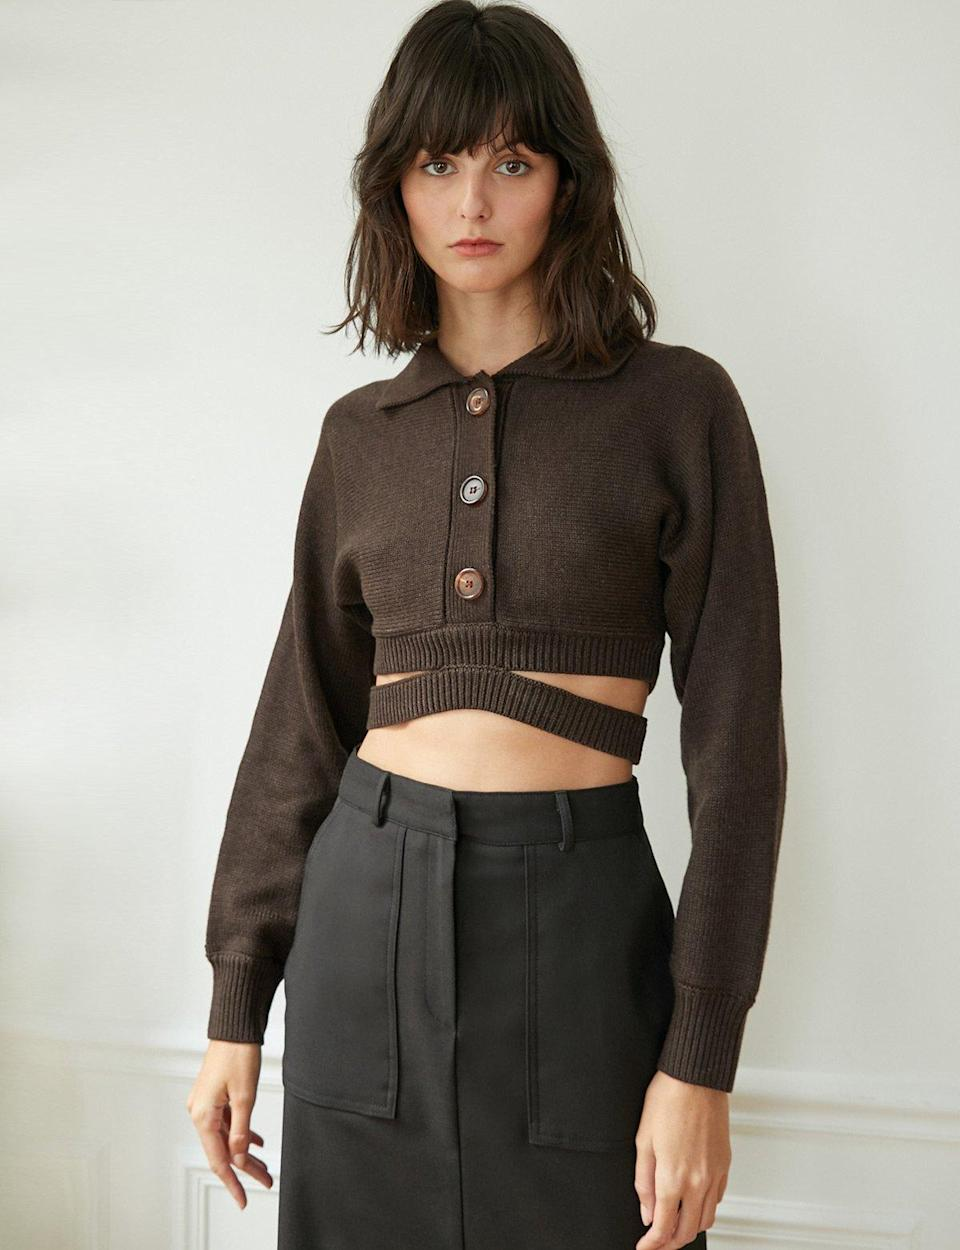 """Consider this fall's answer to the midriff-flossing trend you saw everywhere this summer. $119, Pixie Market. <a href=""""https://www.pixiemarket.com/collections/sweaters-knits/products/cruz-brown-crop-cardigan"""" rel=""""nofollow noopener"""" target=""""_blank"""" data-ylk=""""slk:Get it now!"""" class=""""link rapid-noclick-resp"""">Get it now!</a>"""